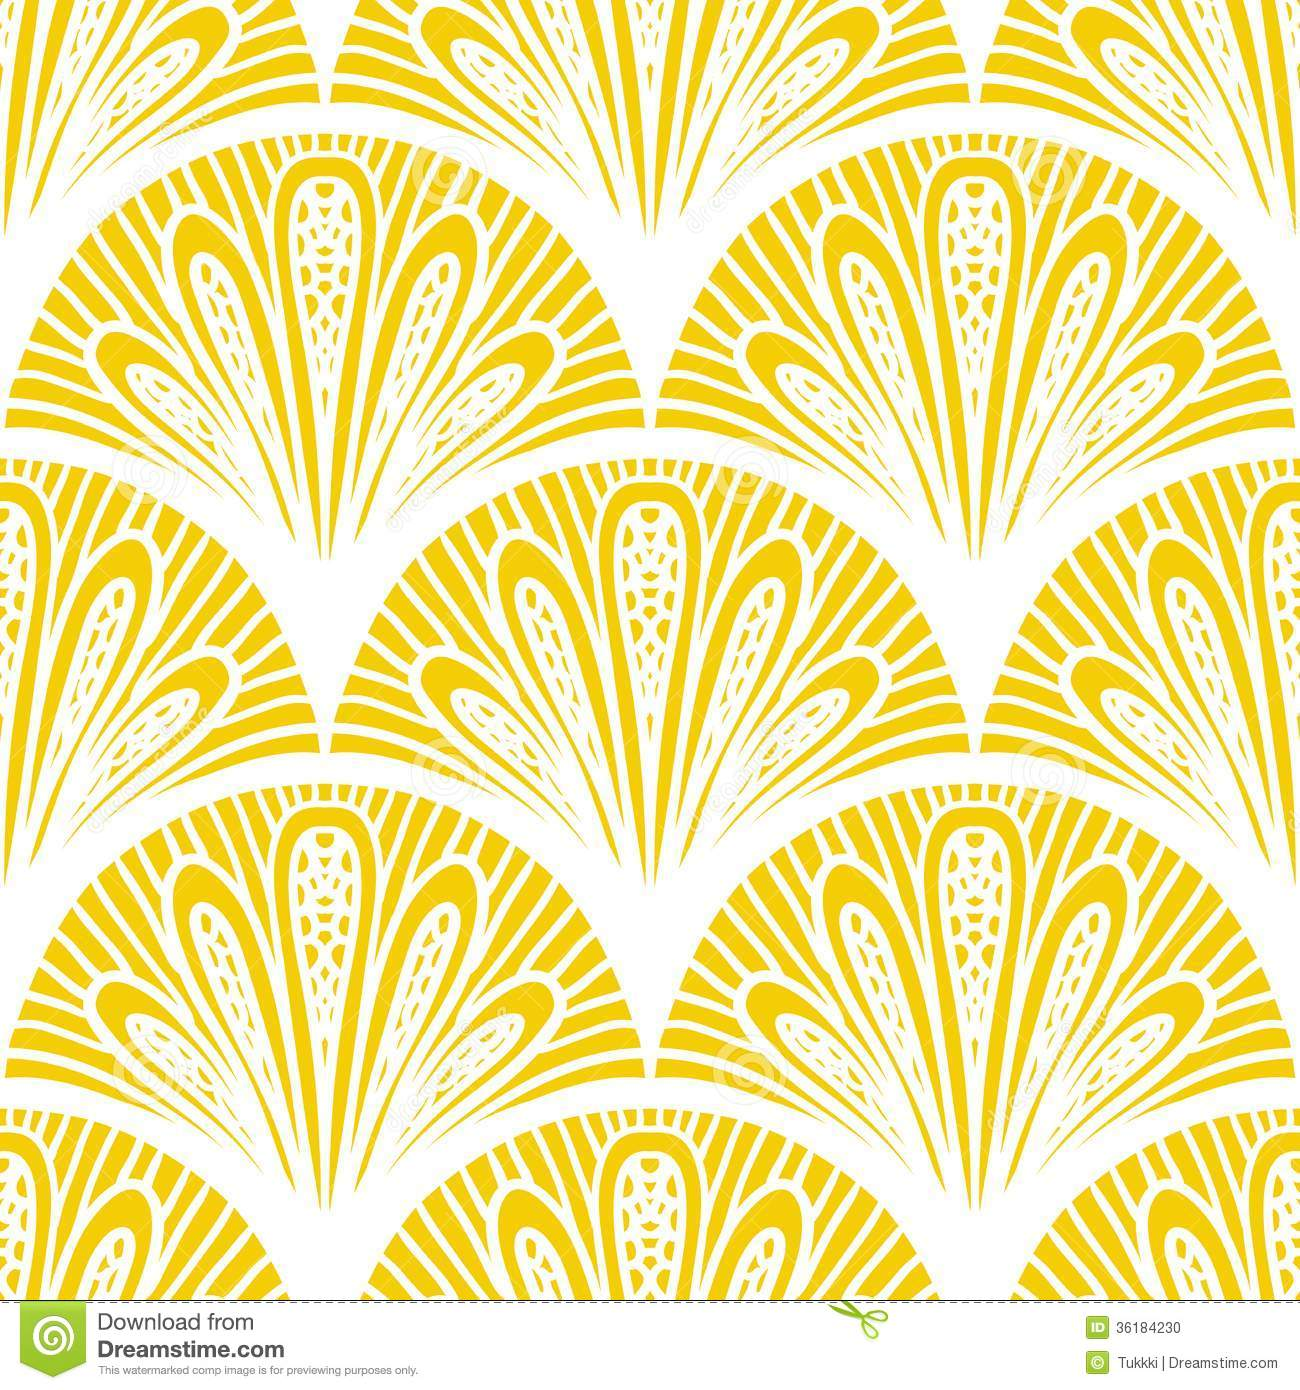 Art Deco Vector Geometric Pattern In Bright Yellow Stock Vector ...